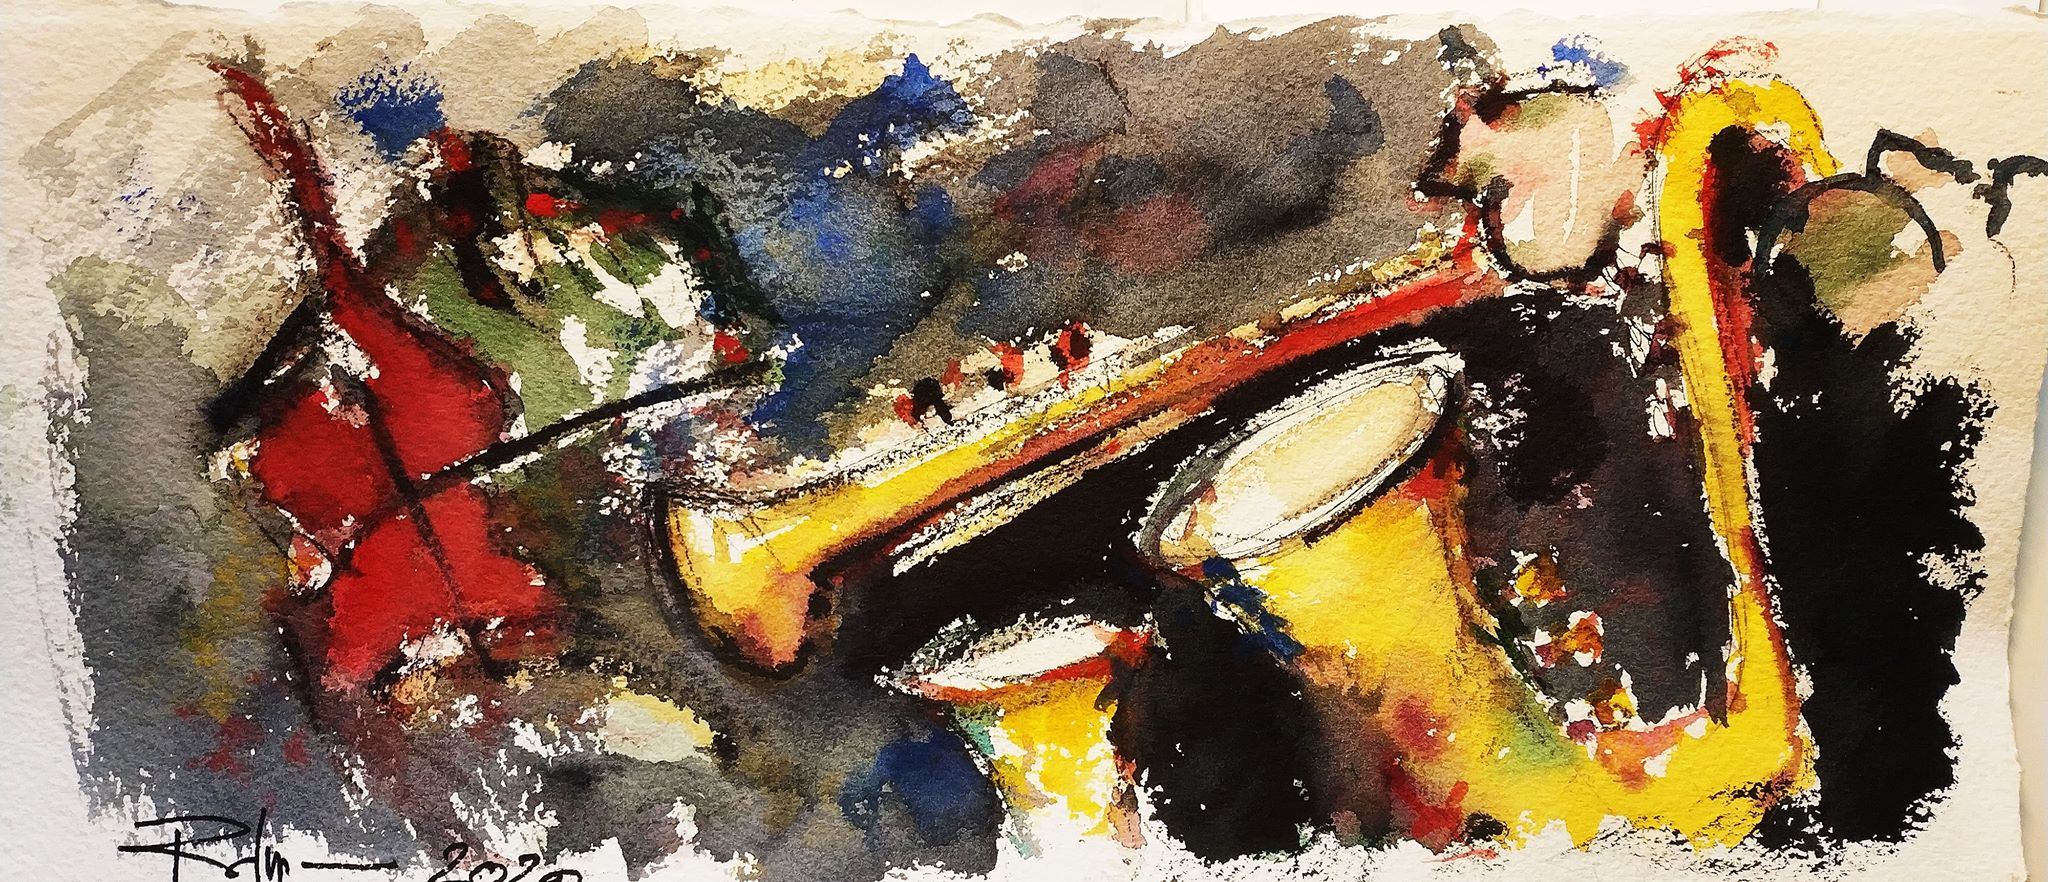 Haïdouks Taraf, 16x38cm watercolour